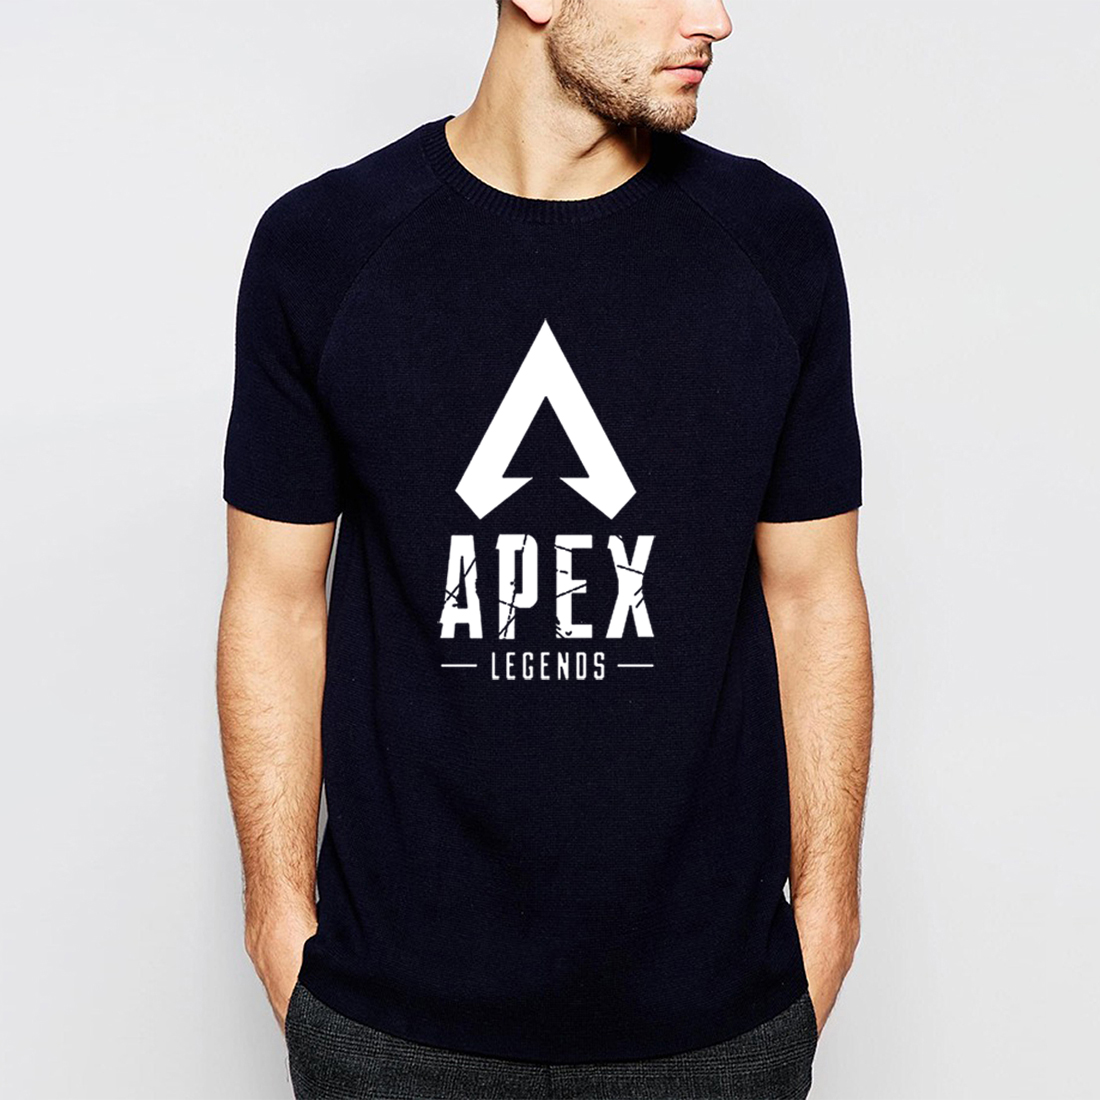 Gamimg Shirt Men Apex Legends New Arrival 2019 Summer 100% Cotton Short Sleeve T-Shirts Casual Black T Shirt Harajuku Tops CM01